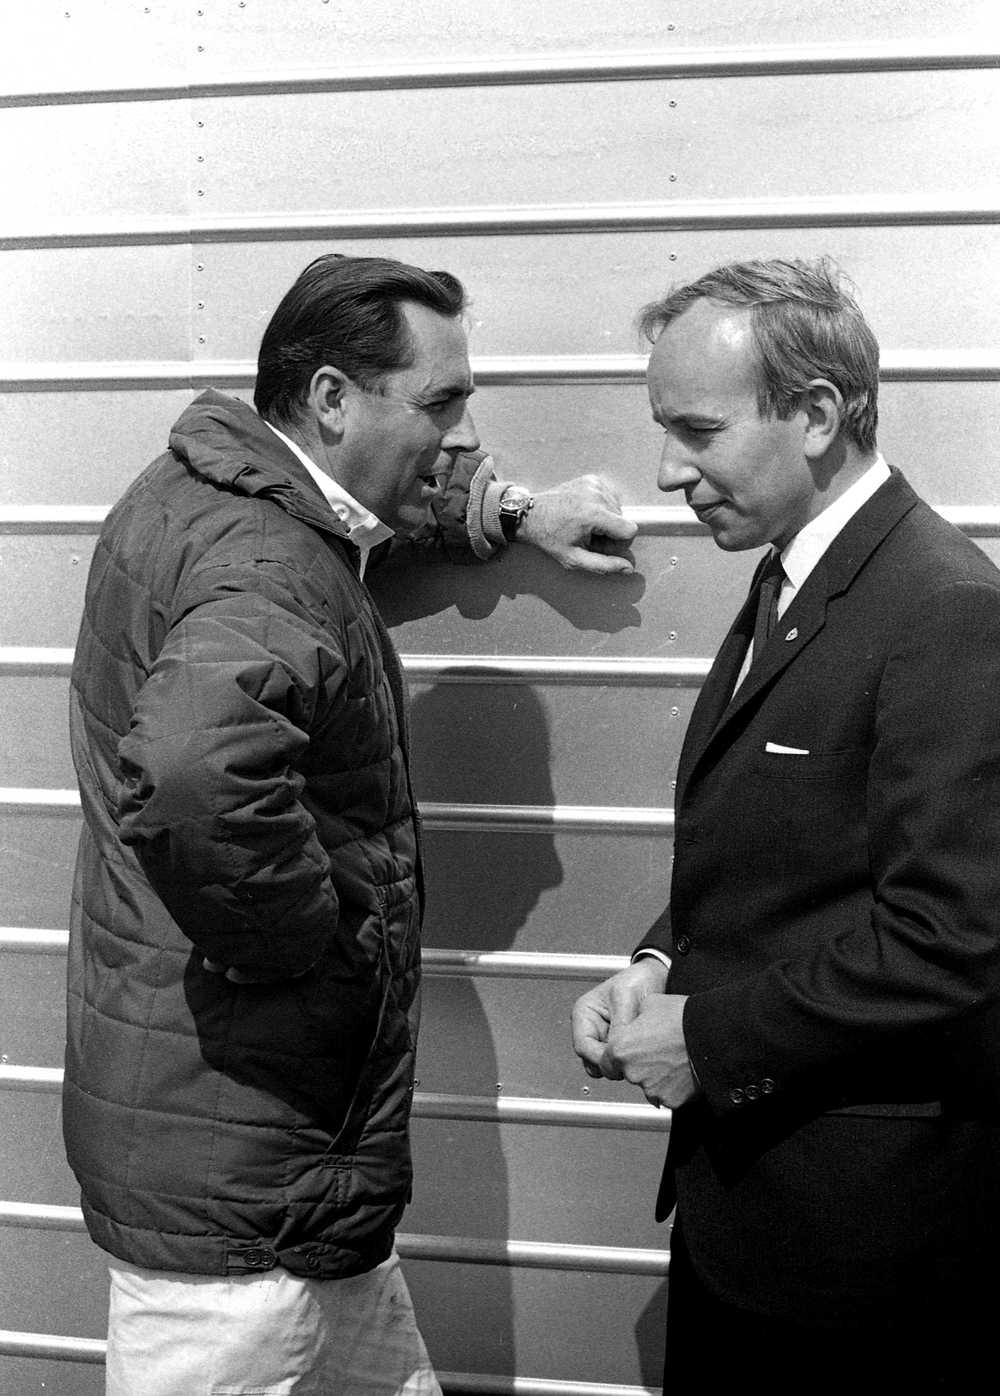 He did speak sometimes. Jack Brabham (left) in deep conversation with John Surtees.